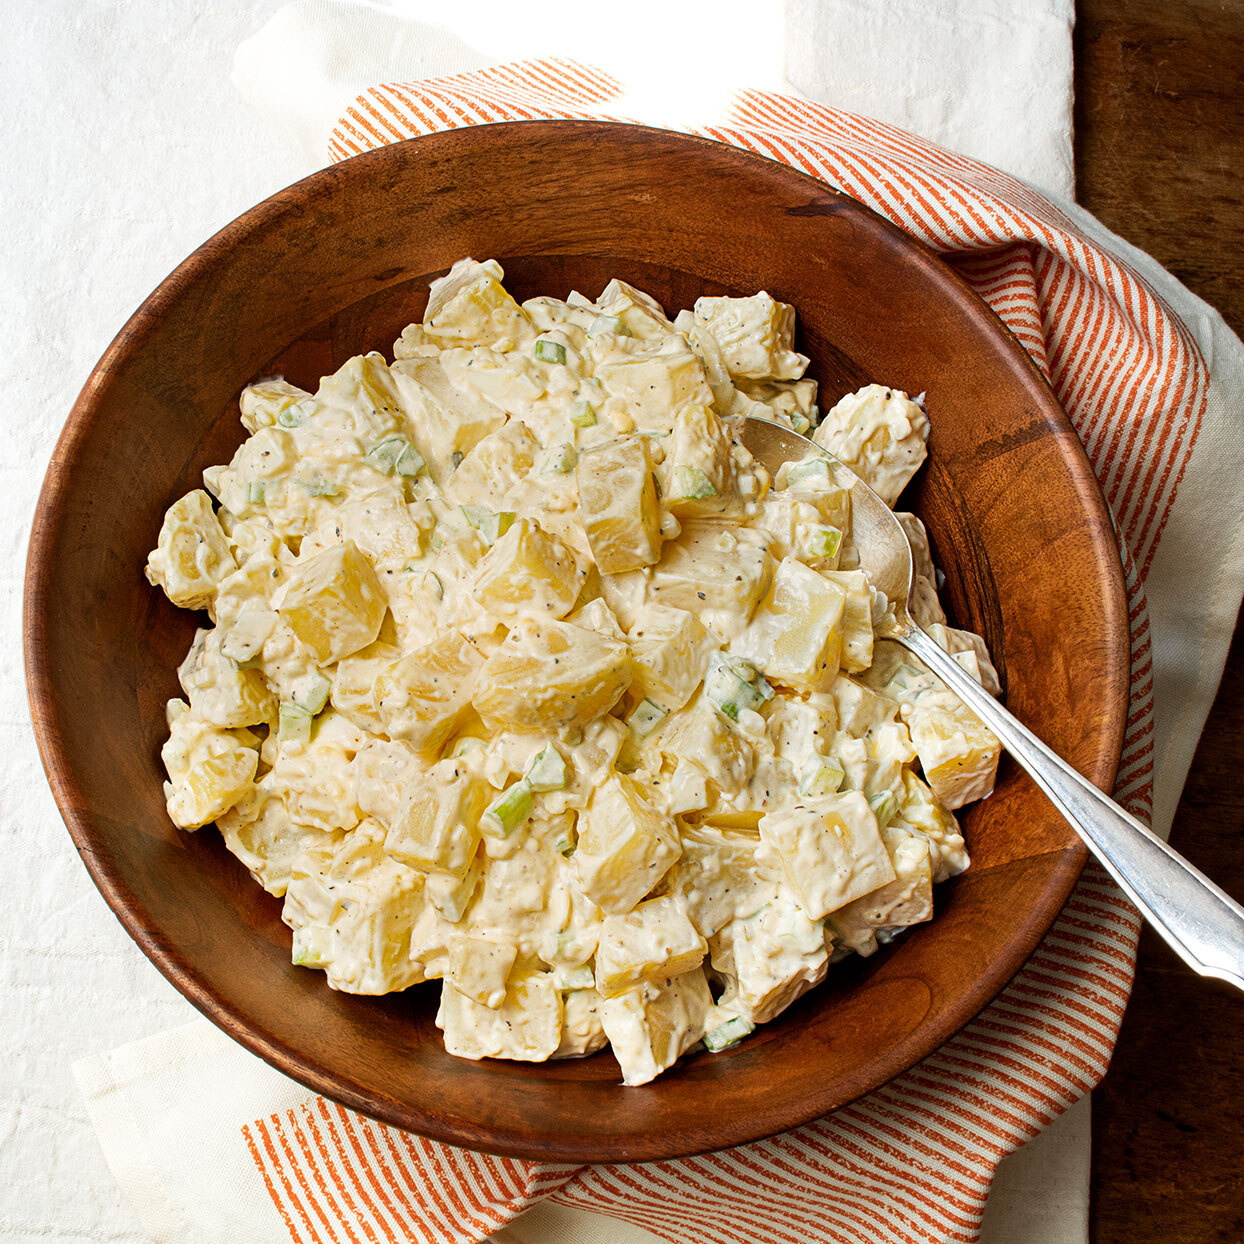 creamy potato salad with spoon in a wooden bowl